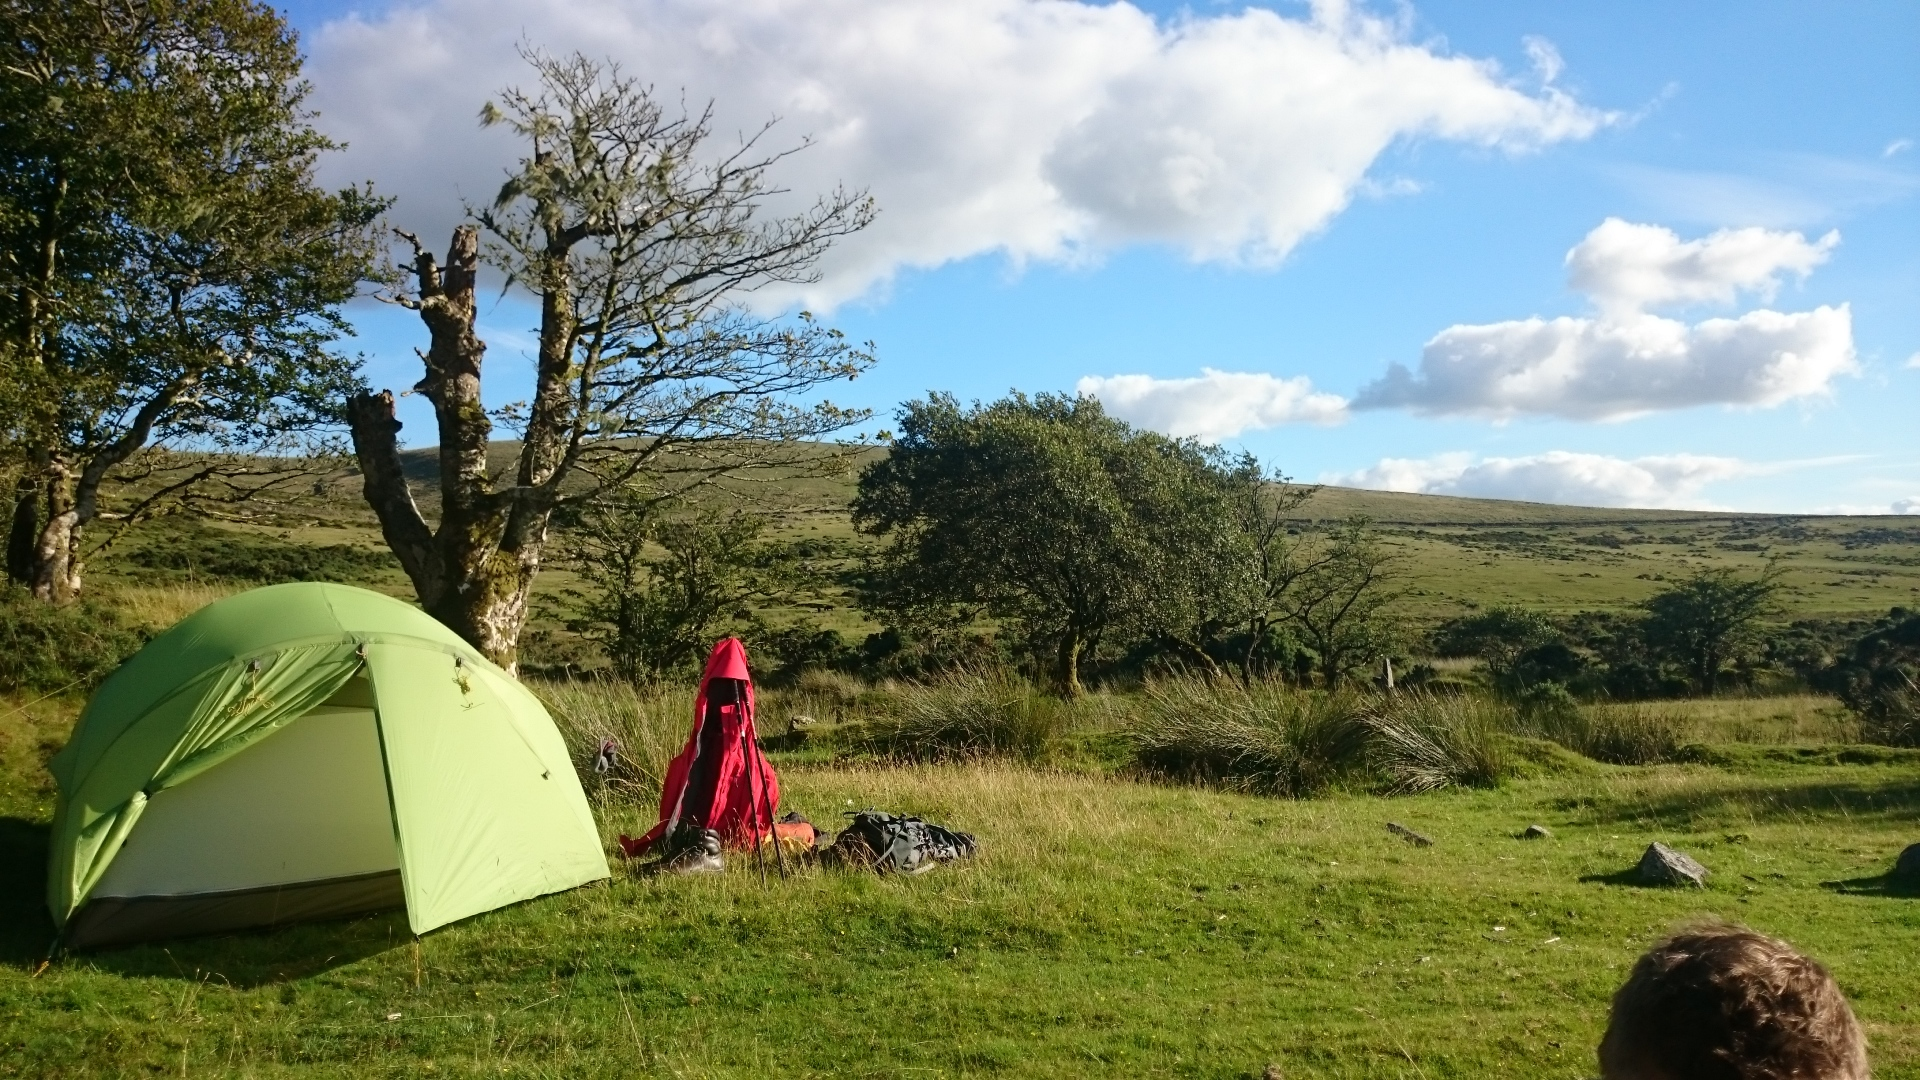 Wild Camping at Swincombe with the MSR Mutha Hubba